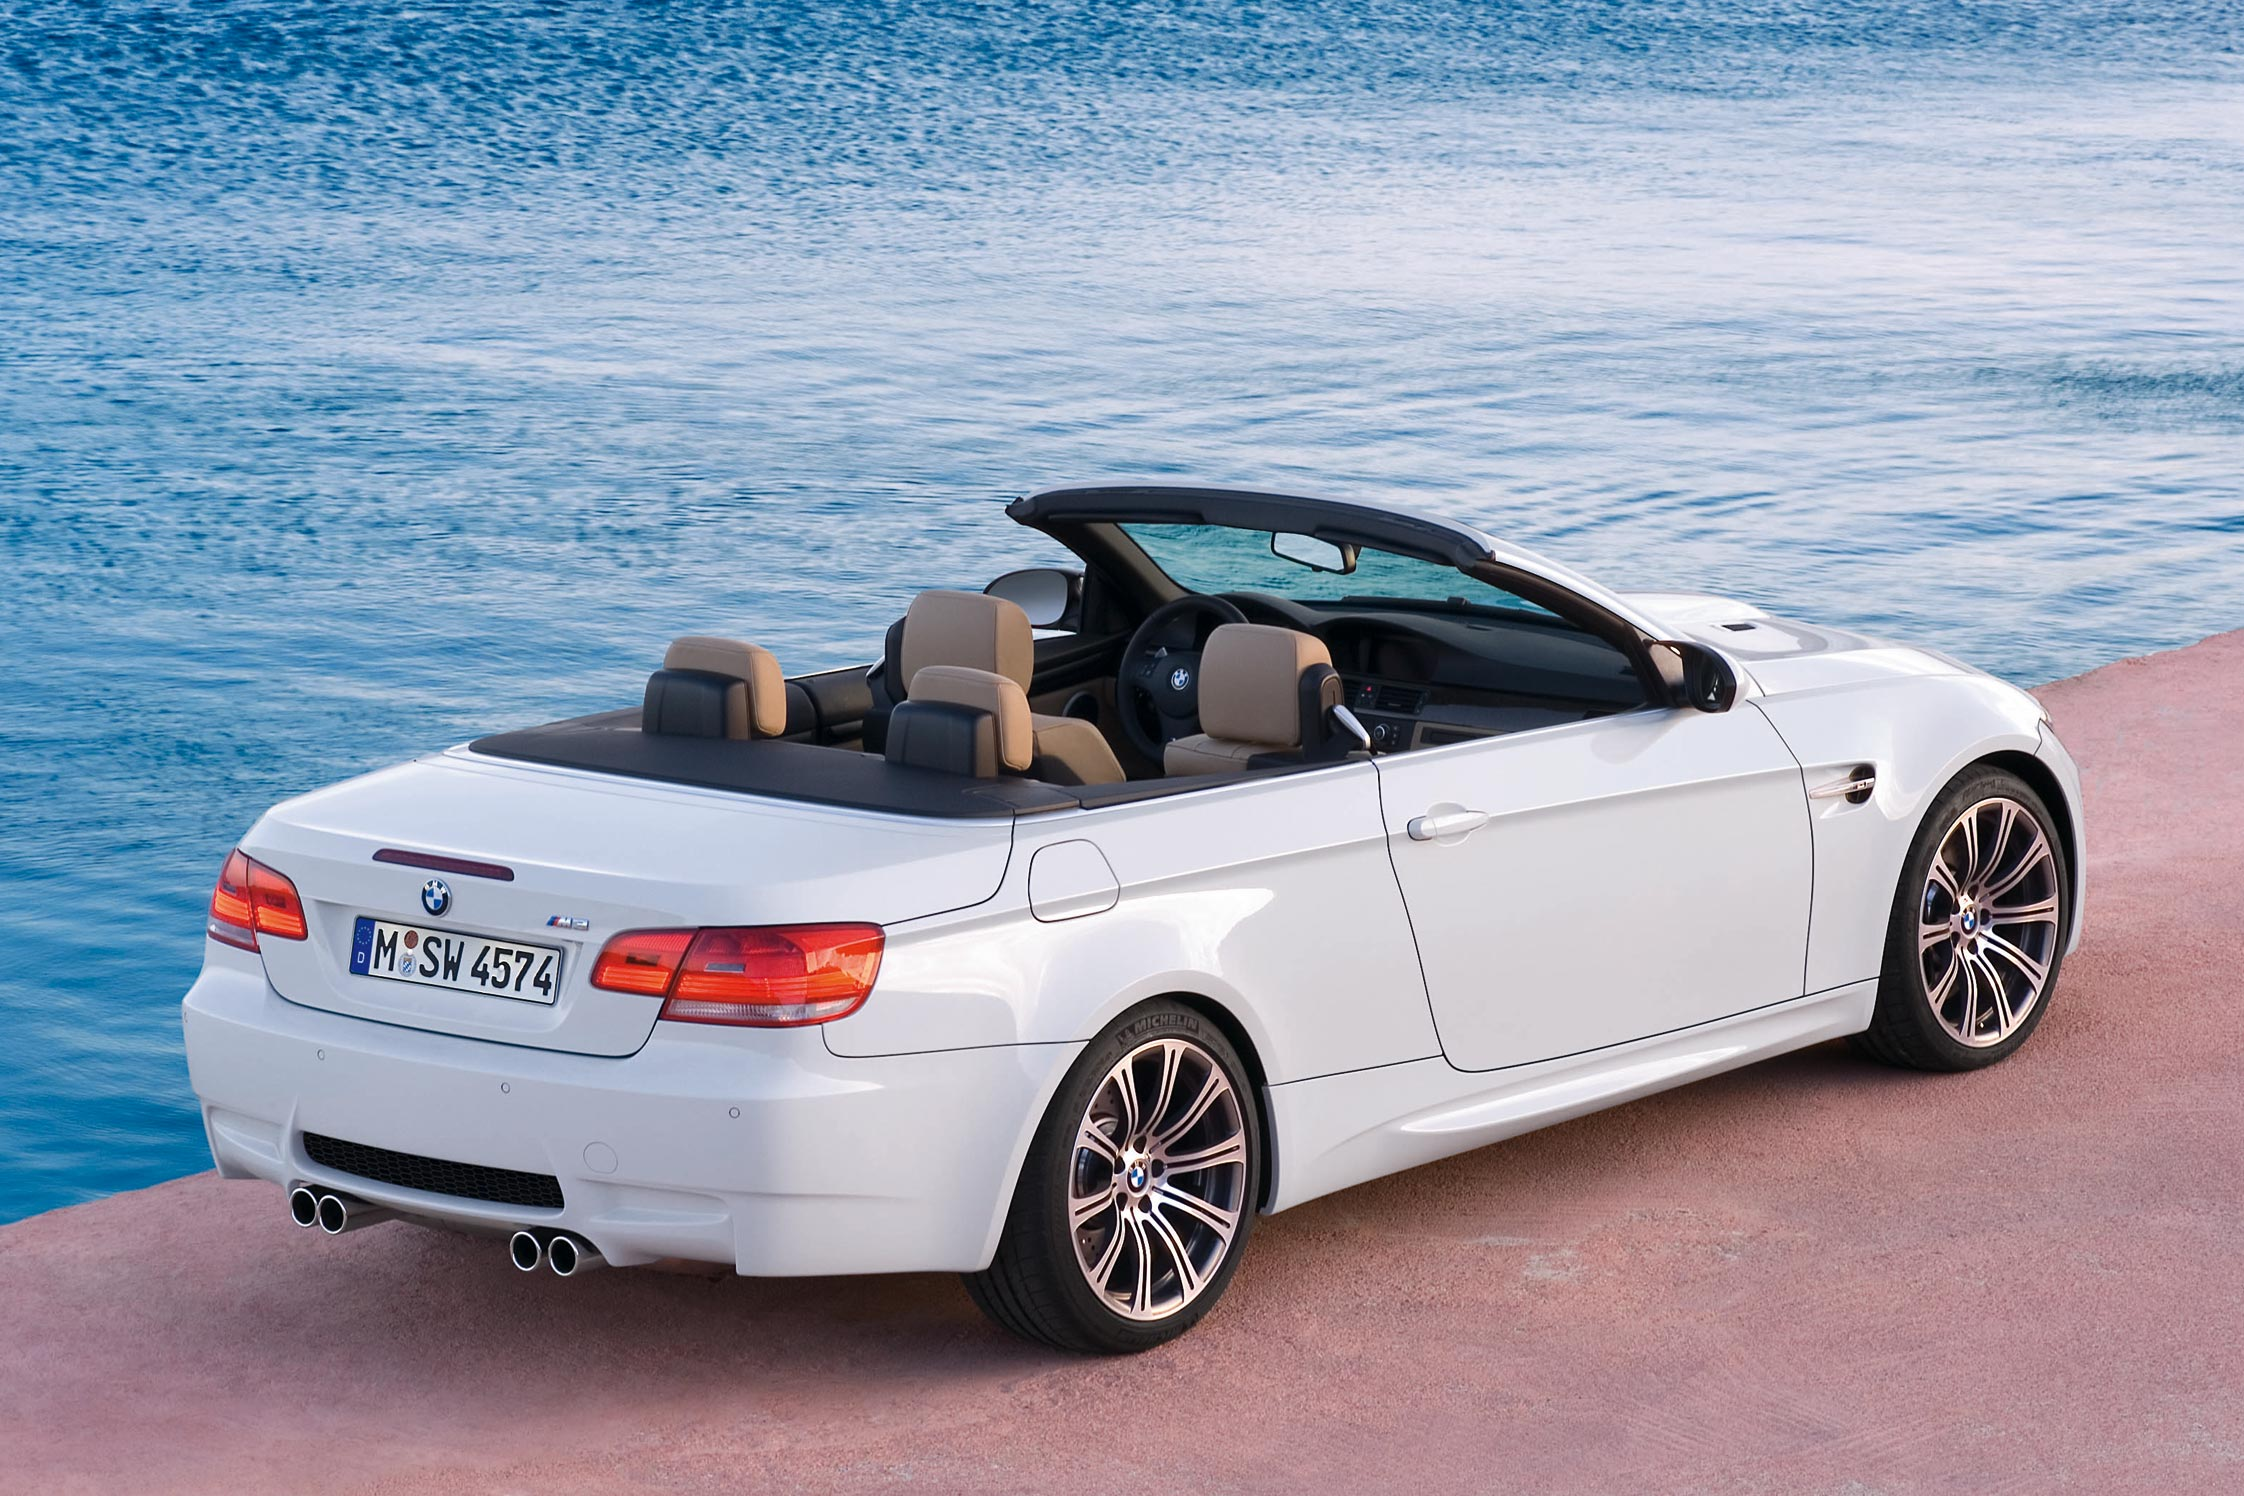 essai bmw m3 cabriolet motorlegend. Black Bedroom Furniture Sets. Home Design Ideas